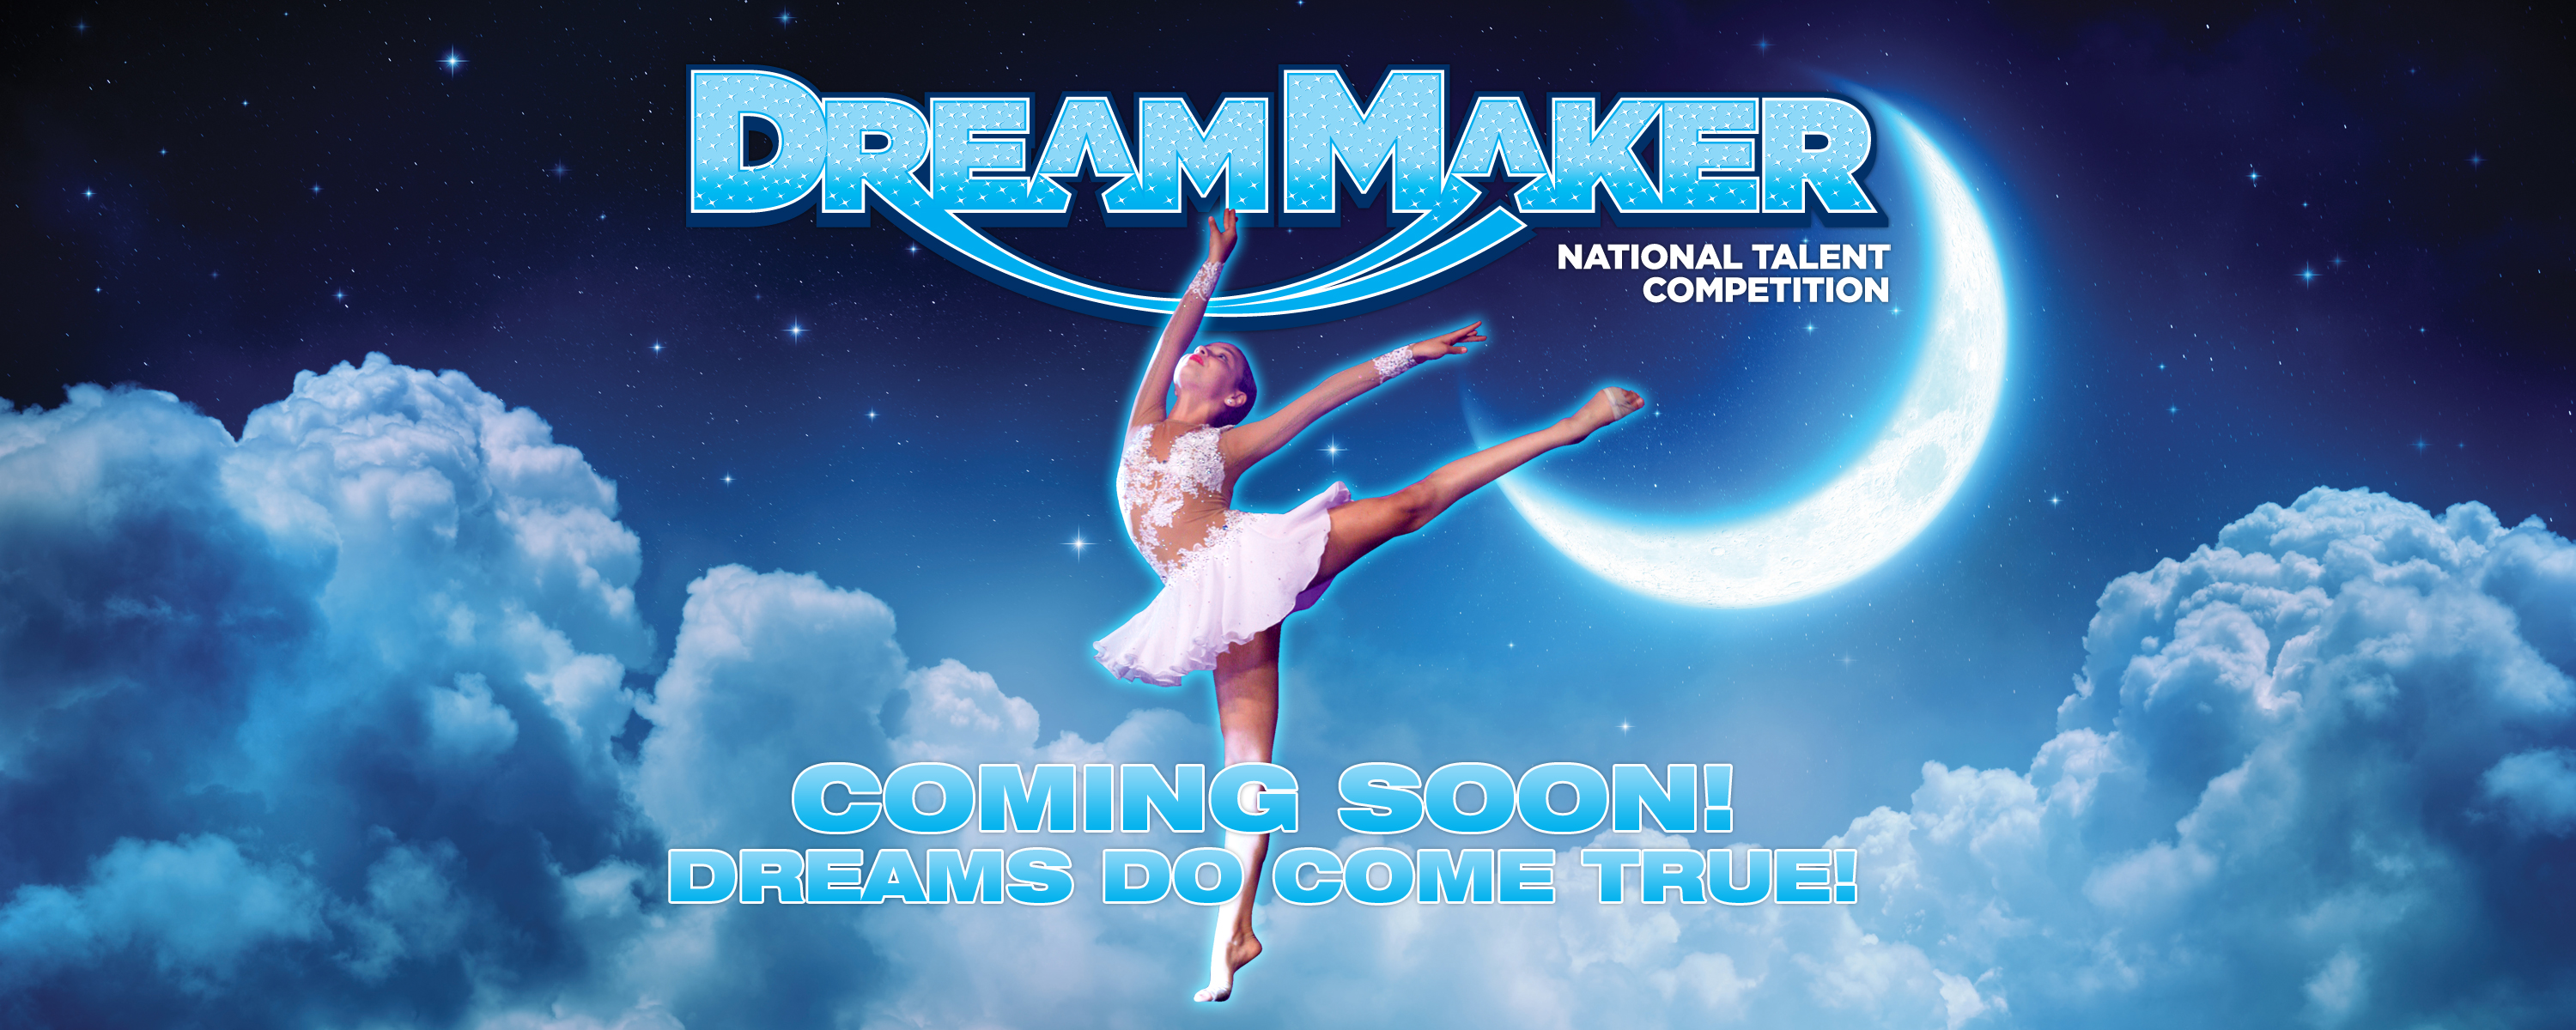 Dream Maker National Talent Competition Dreams Do Come True